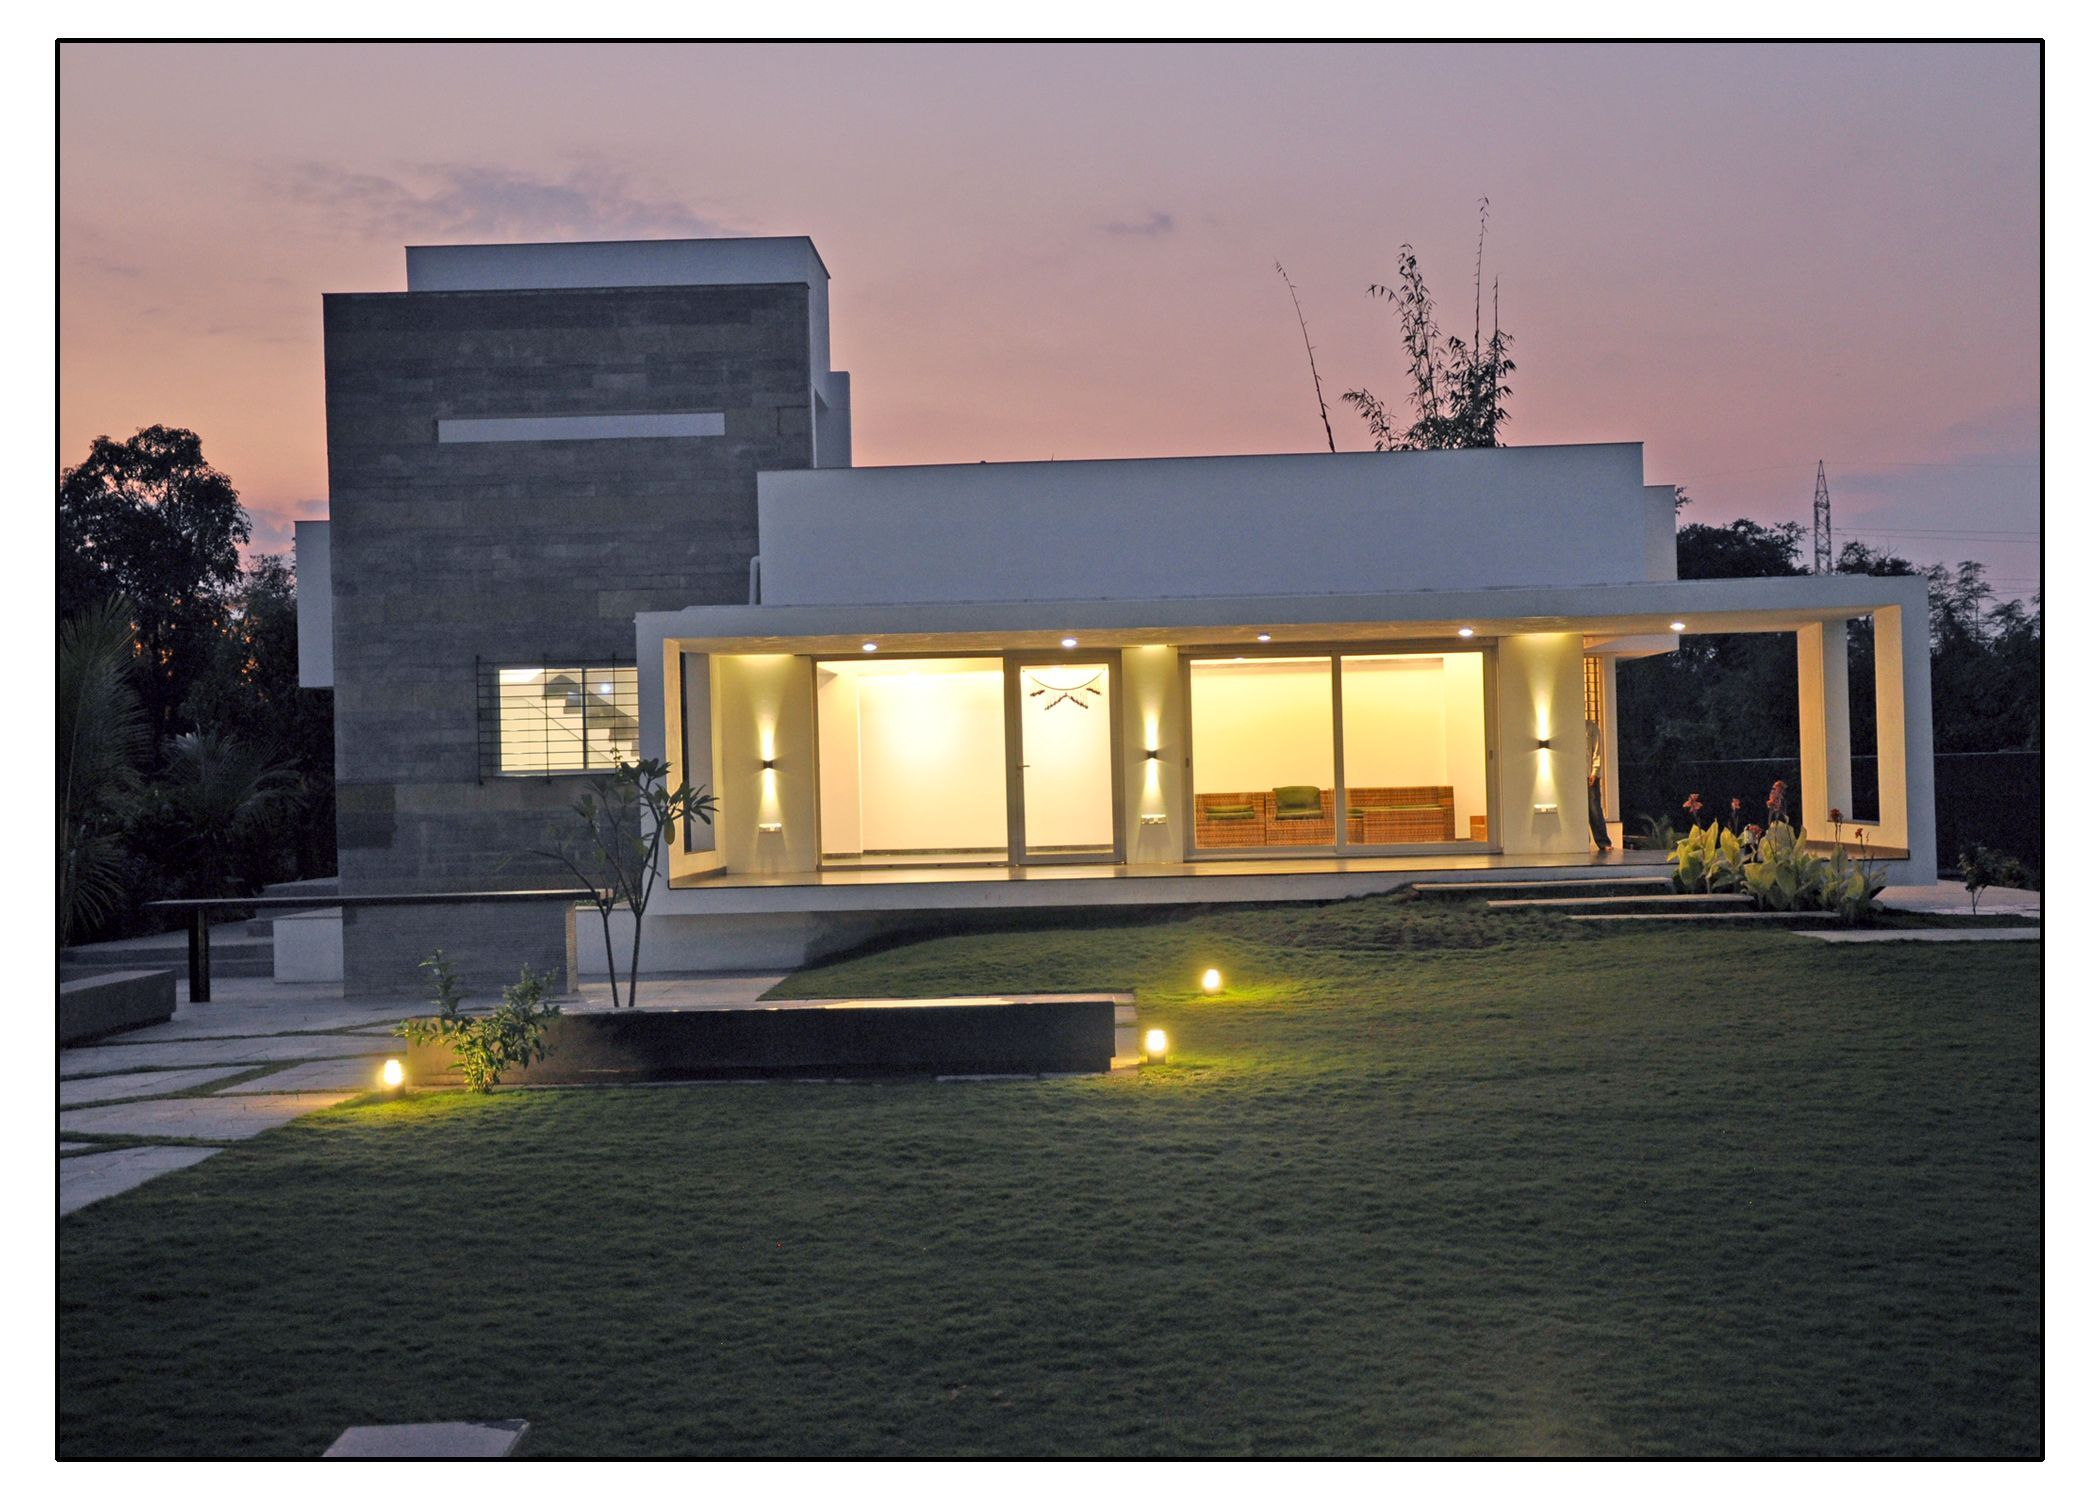 Architecture and interior design projects in india for Terrace 6 indore images